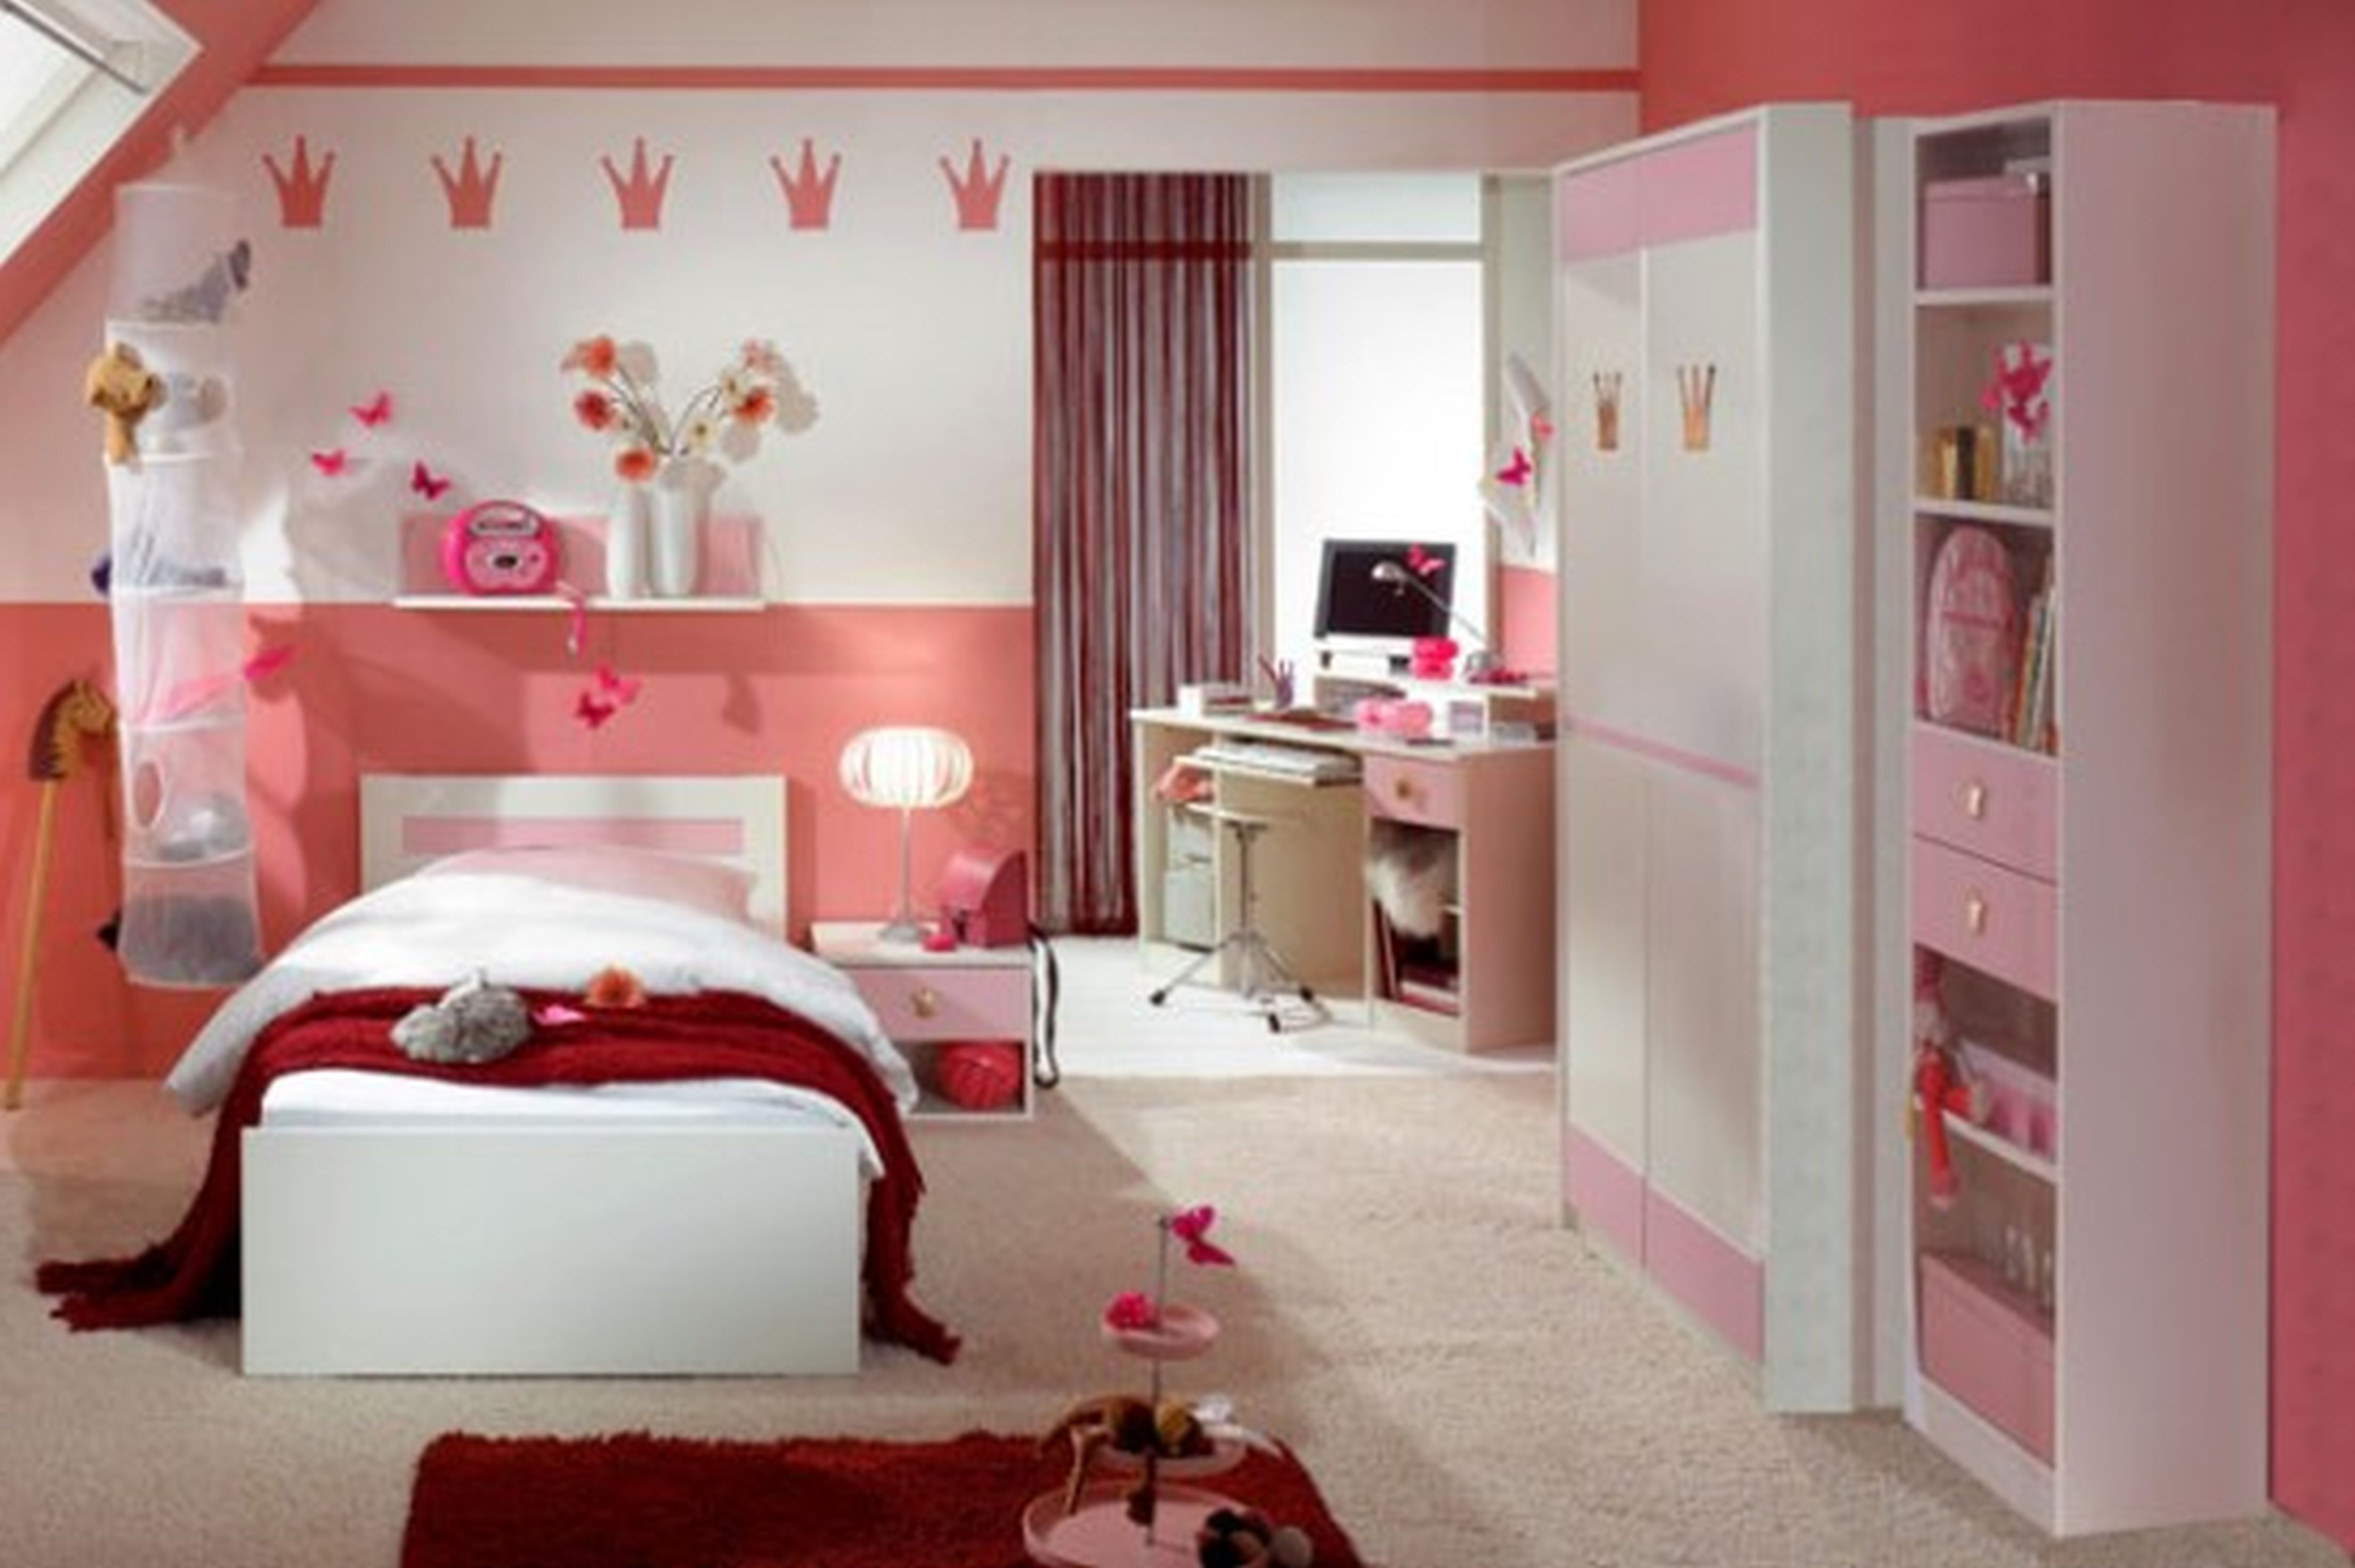 Elegant Gorgeous Girls Bedroom Ideas For Small Rooms : Simple Girls Bedroom Design  Bedroom Qonser Teenage Girl Bedroom Designs For Small Rooms Childrens  Bedroom ...